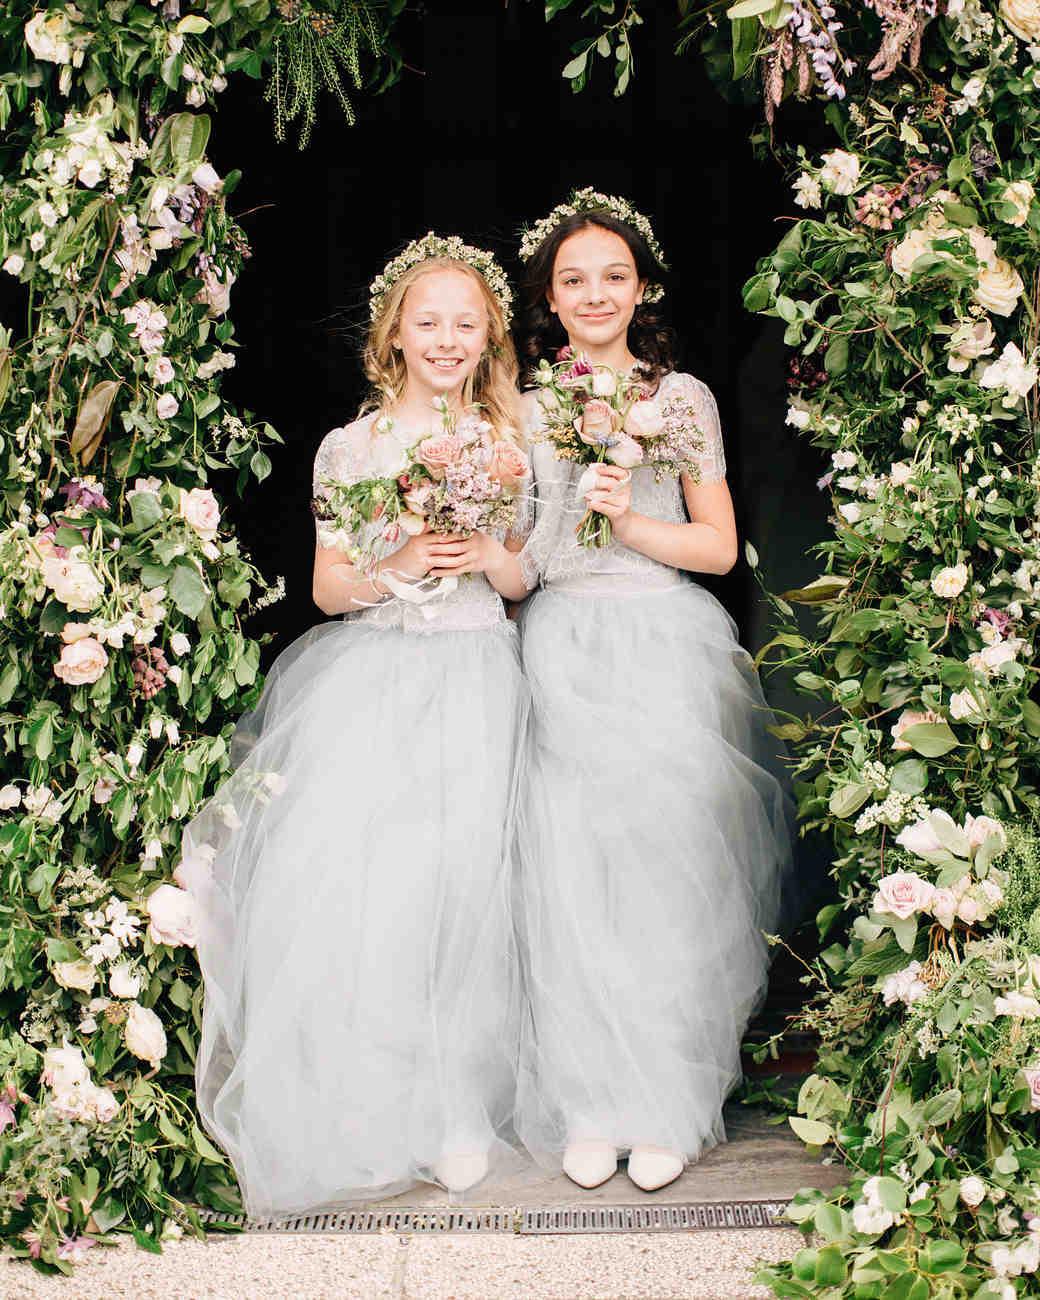 Wedding Flower Girl: 45 Spring Wedding Ideas From Real Celebrations